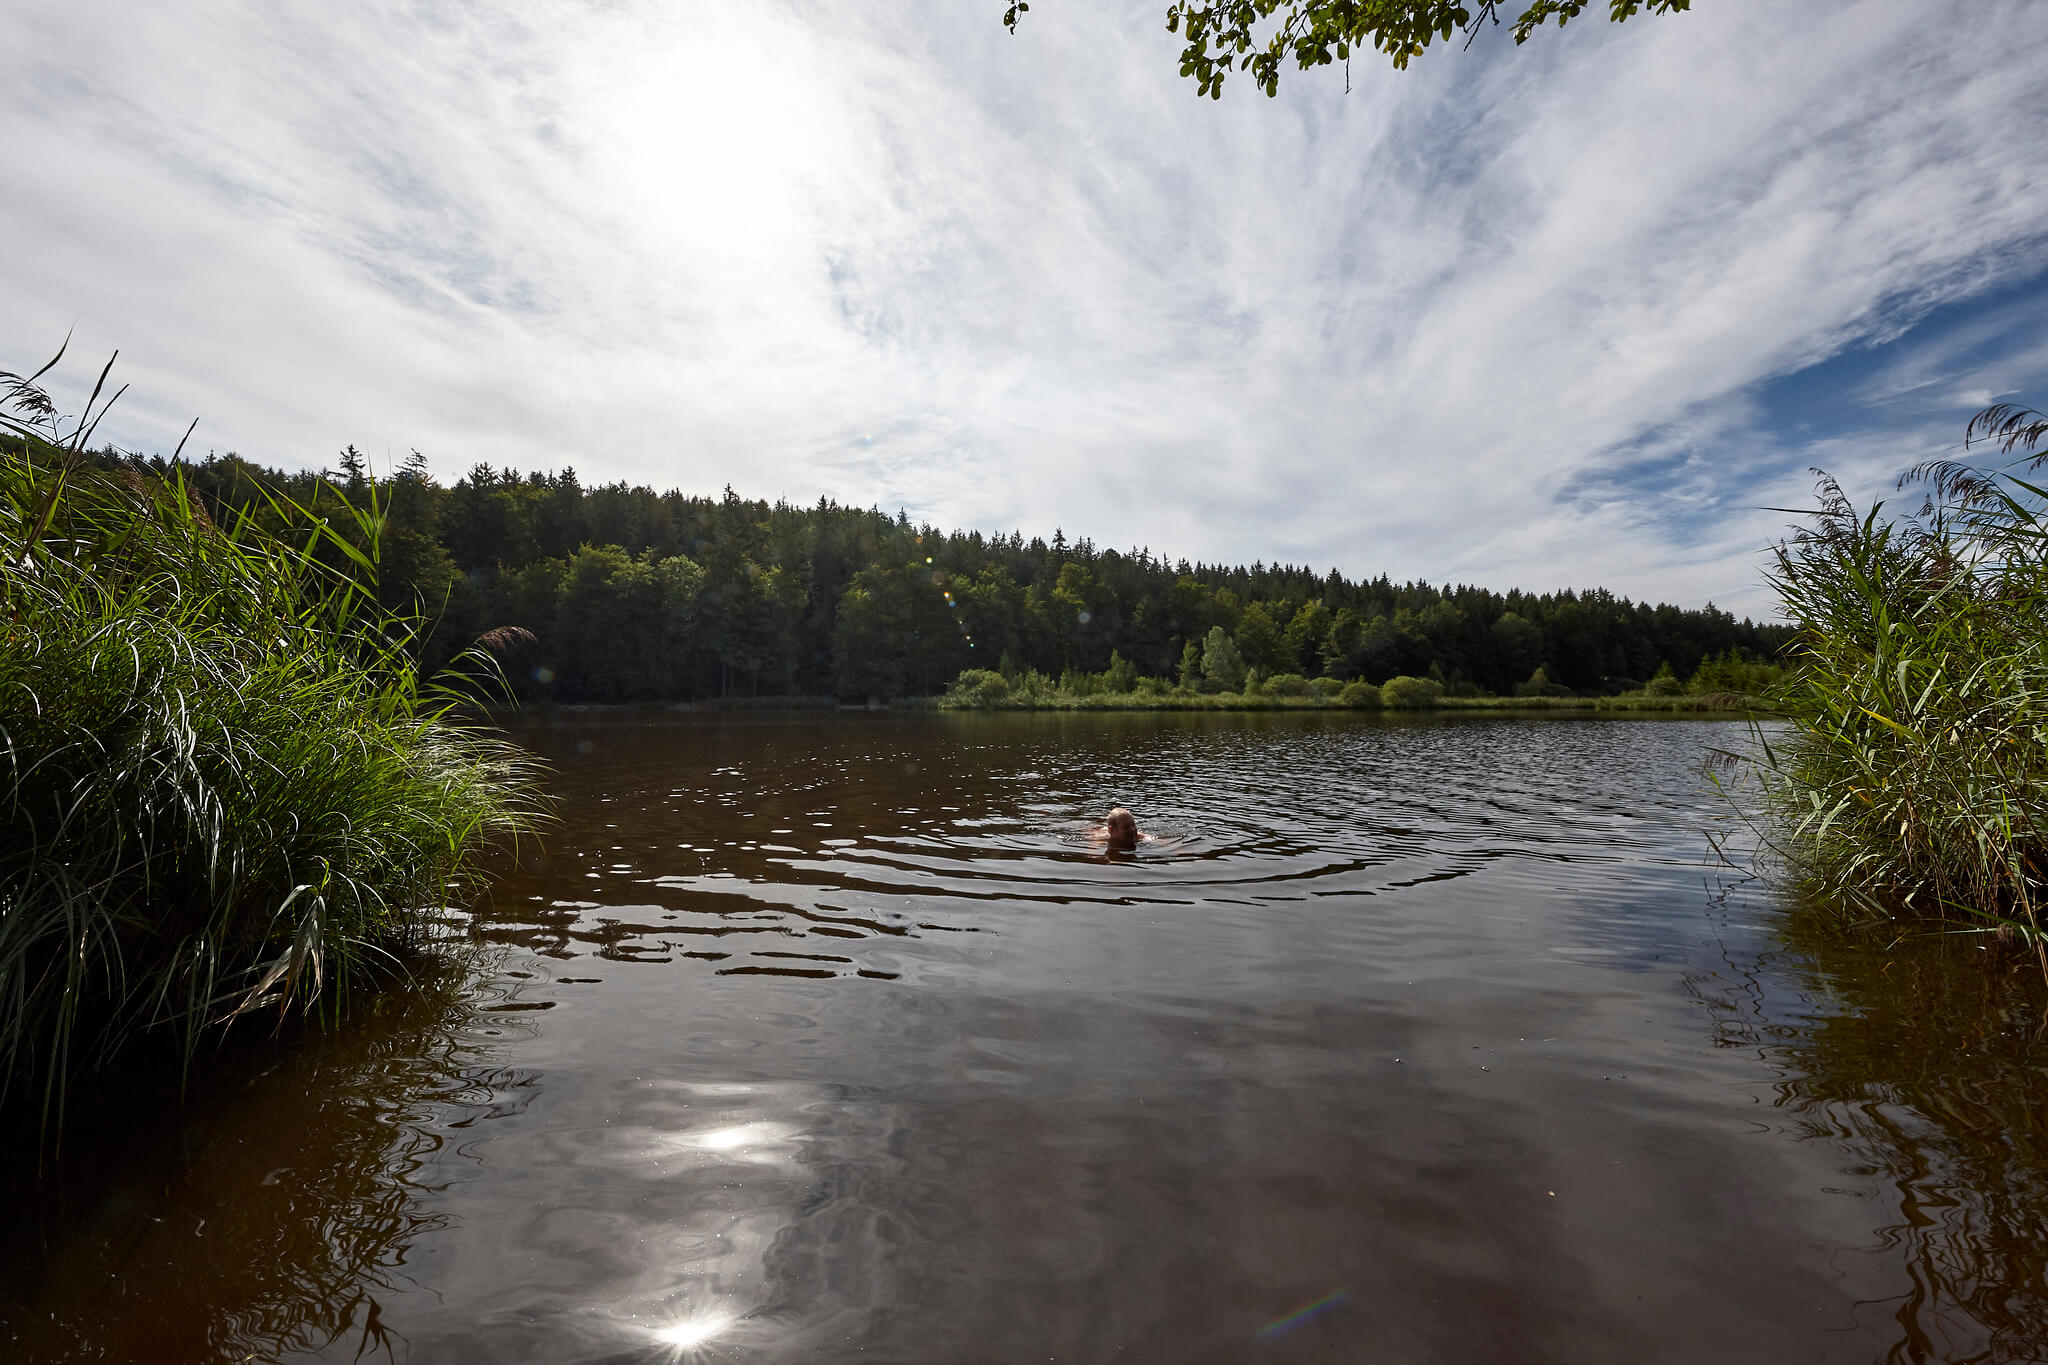 A man participating in wild swimming